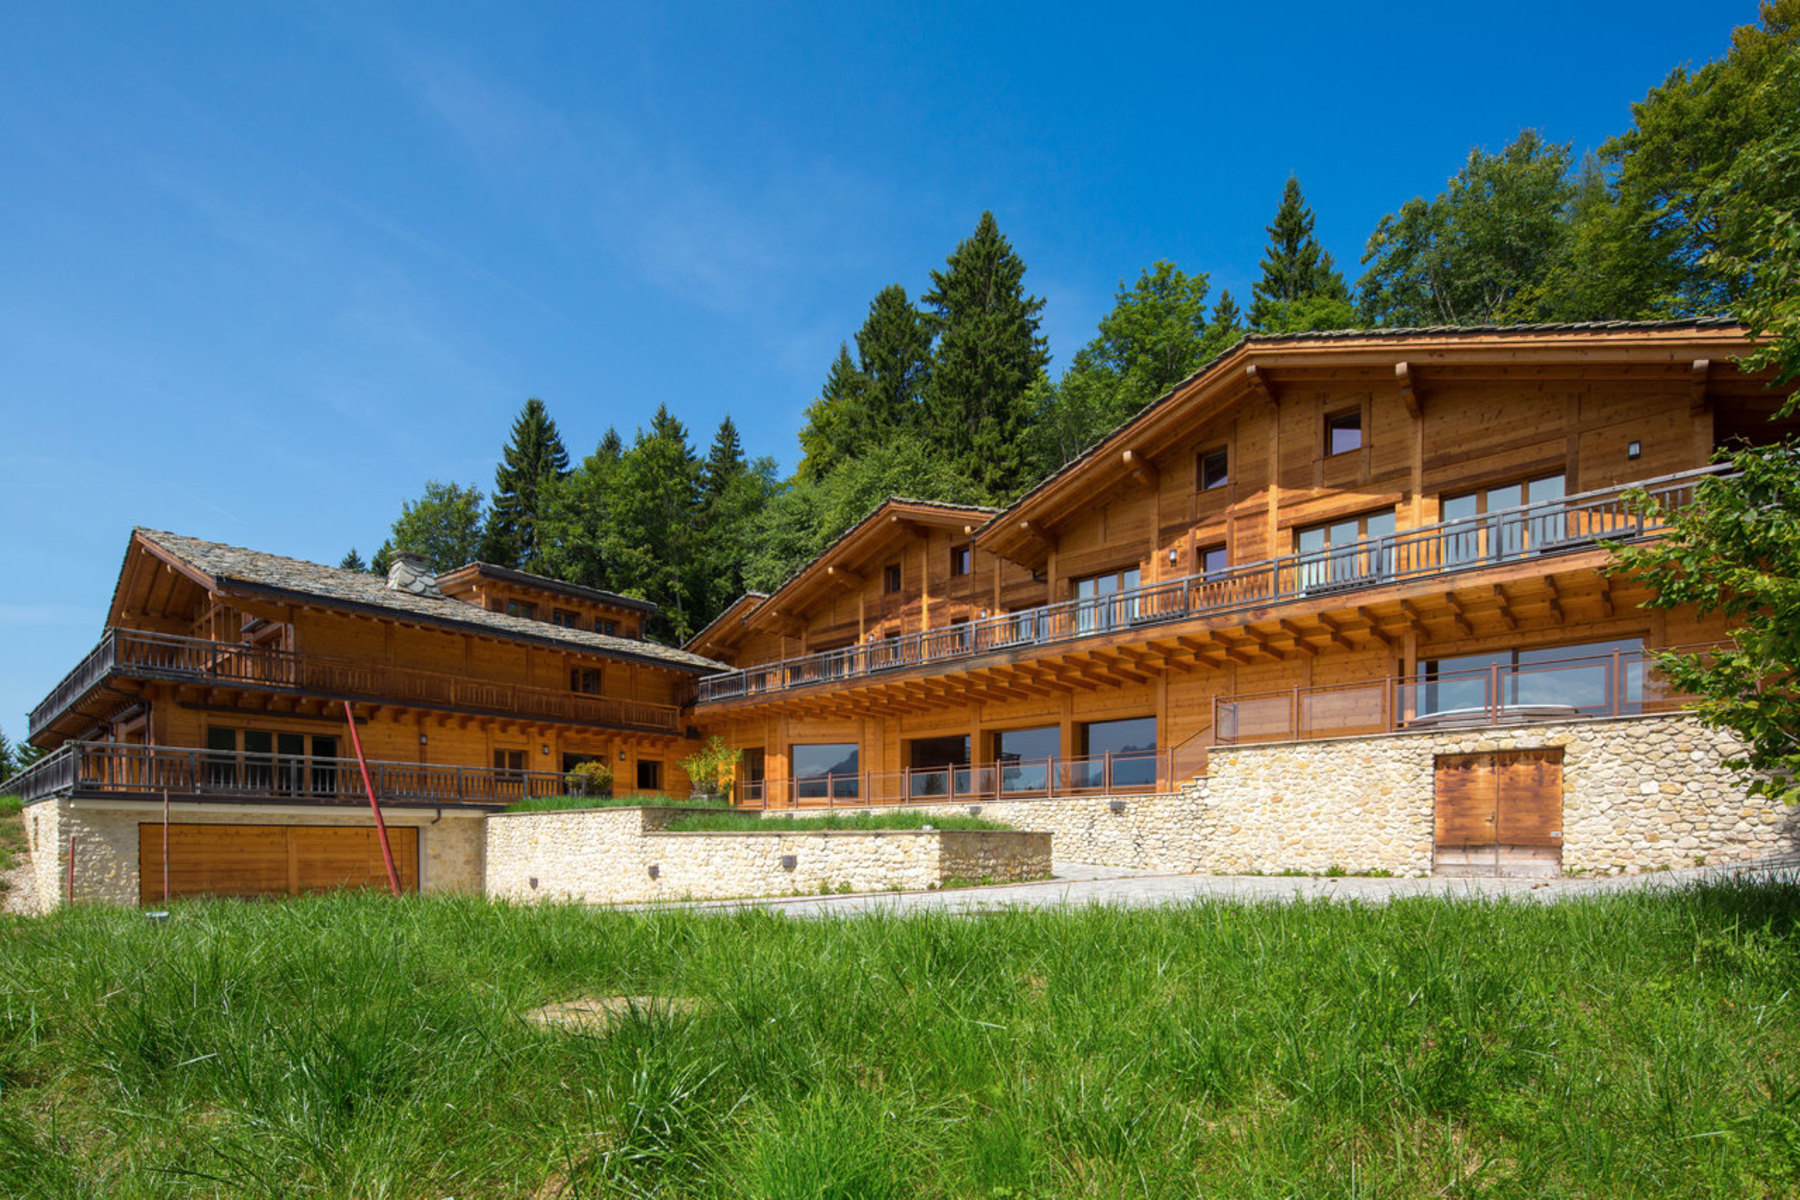 Частный односемейный дом для того Продажа на Luxury property in the heart of verdant grounds stretching over 6.5 hectares Villars-sur-Ollon, Villars-Sur-Ollon, Во, 1884 Швейцария